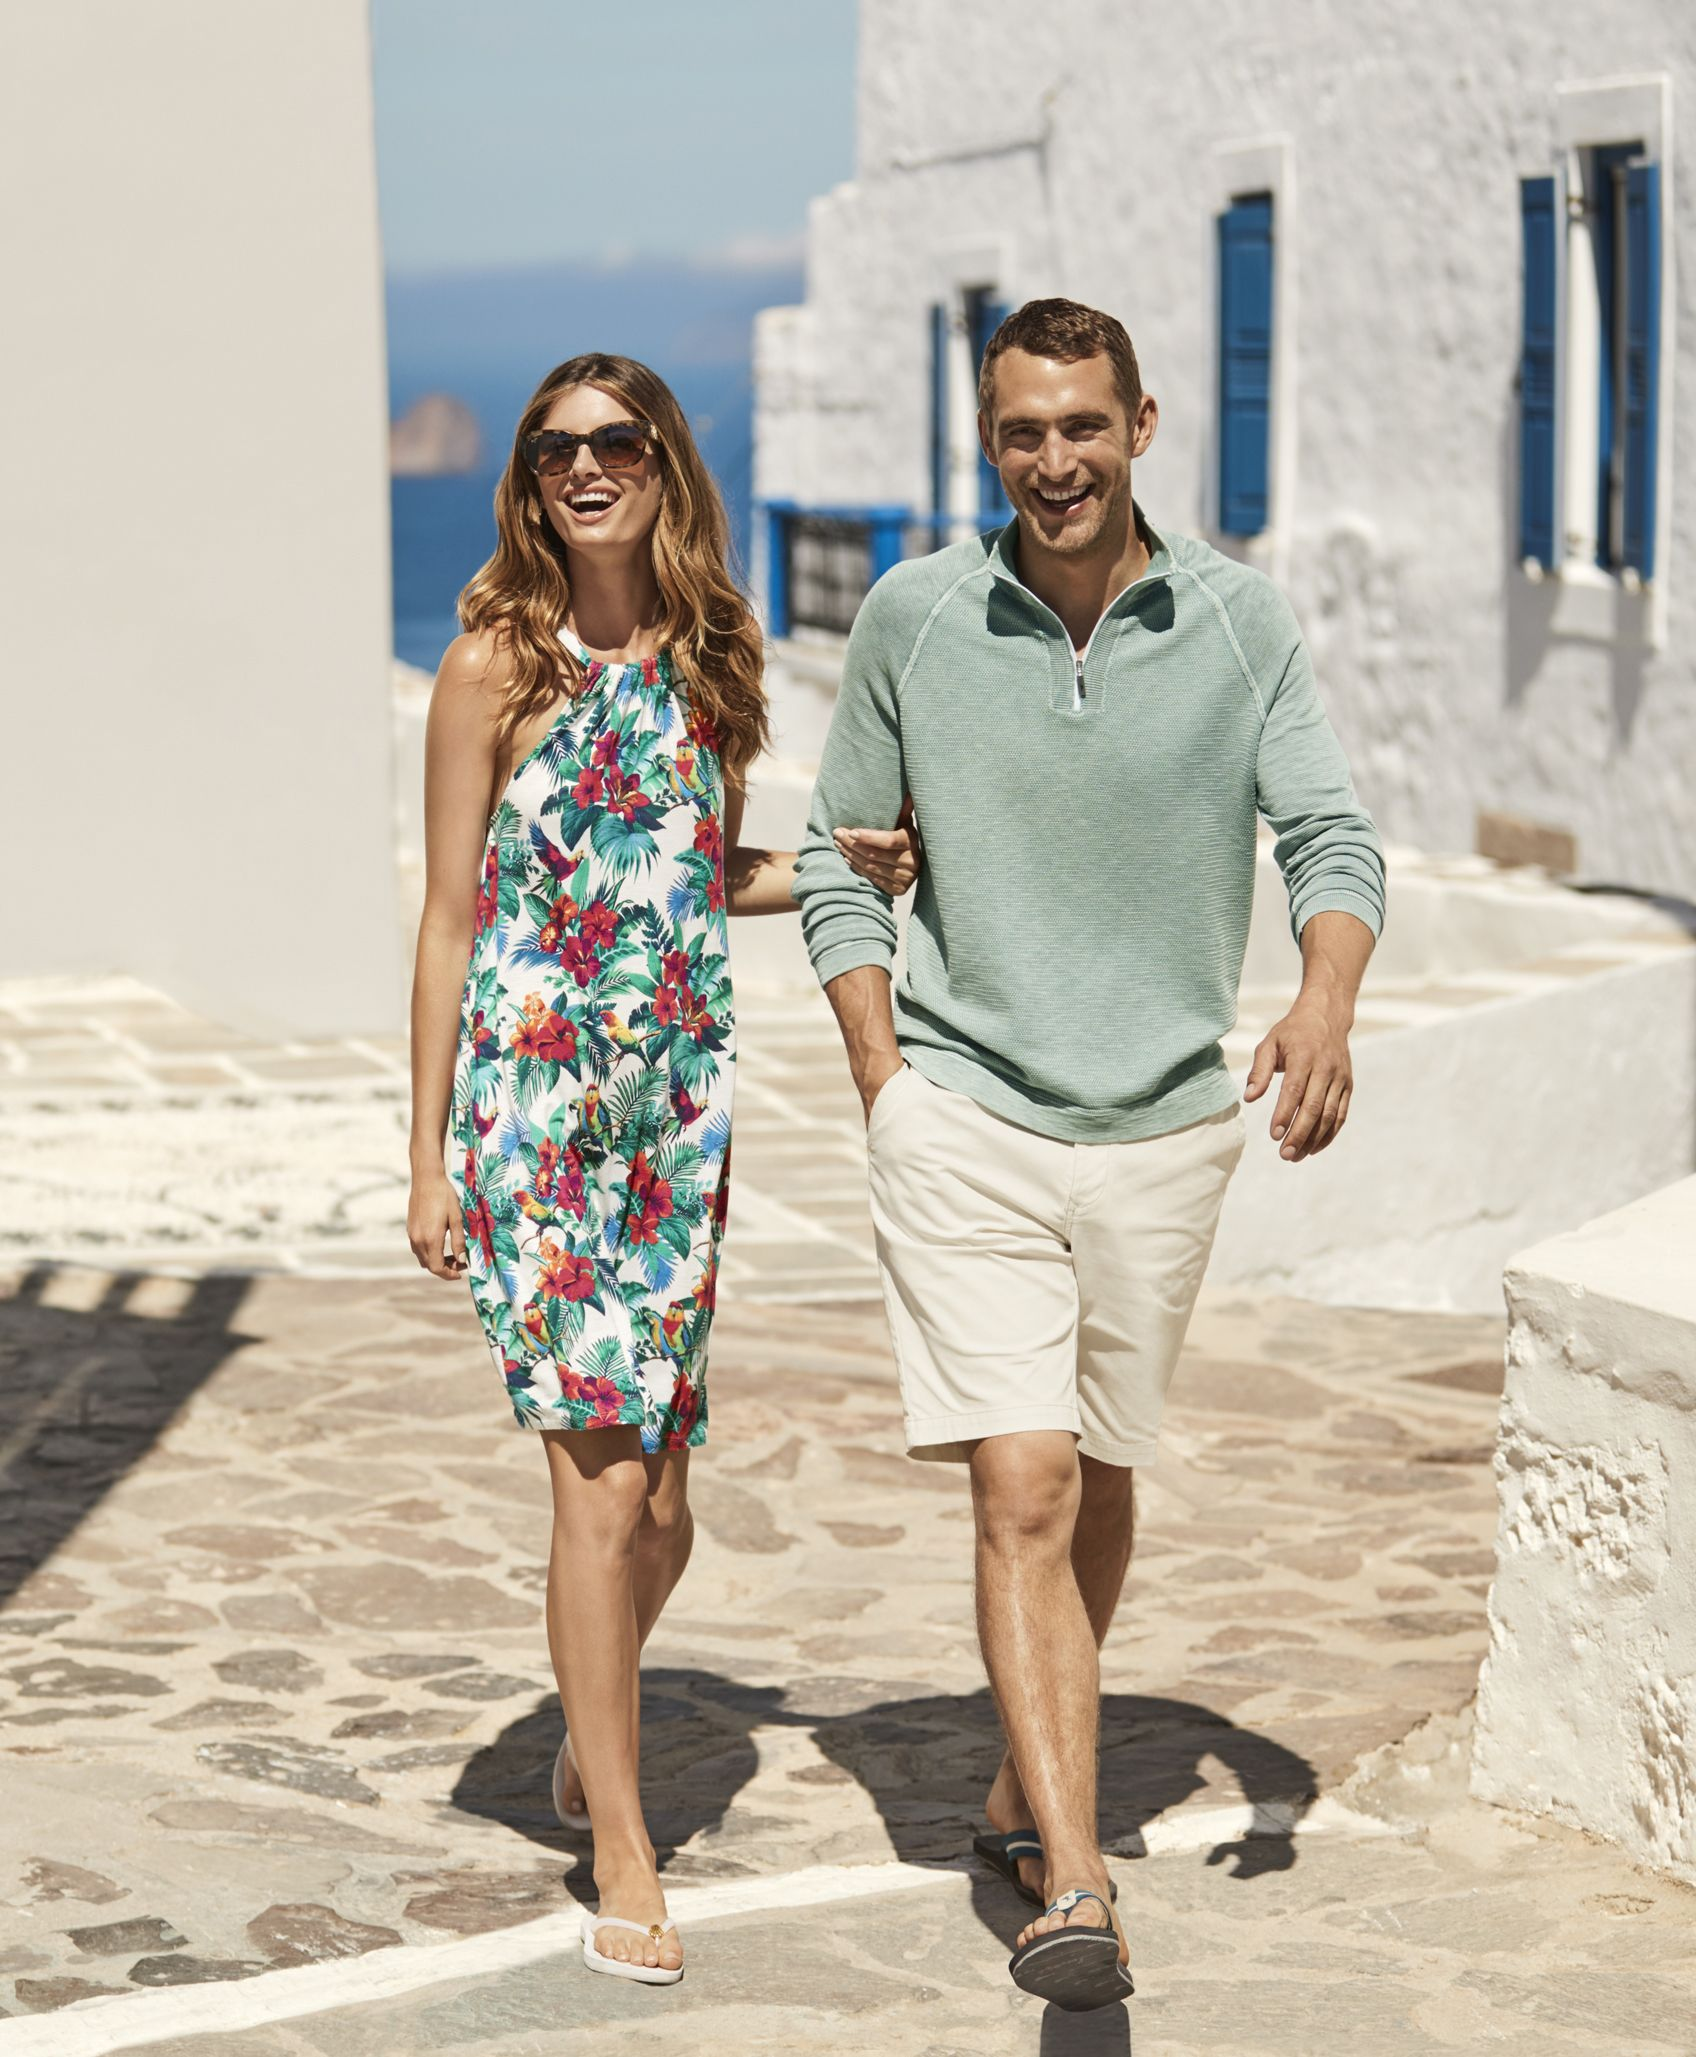 bf7b99a3ae45 2017 Resort Collection - Tommy Bahama